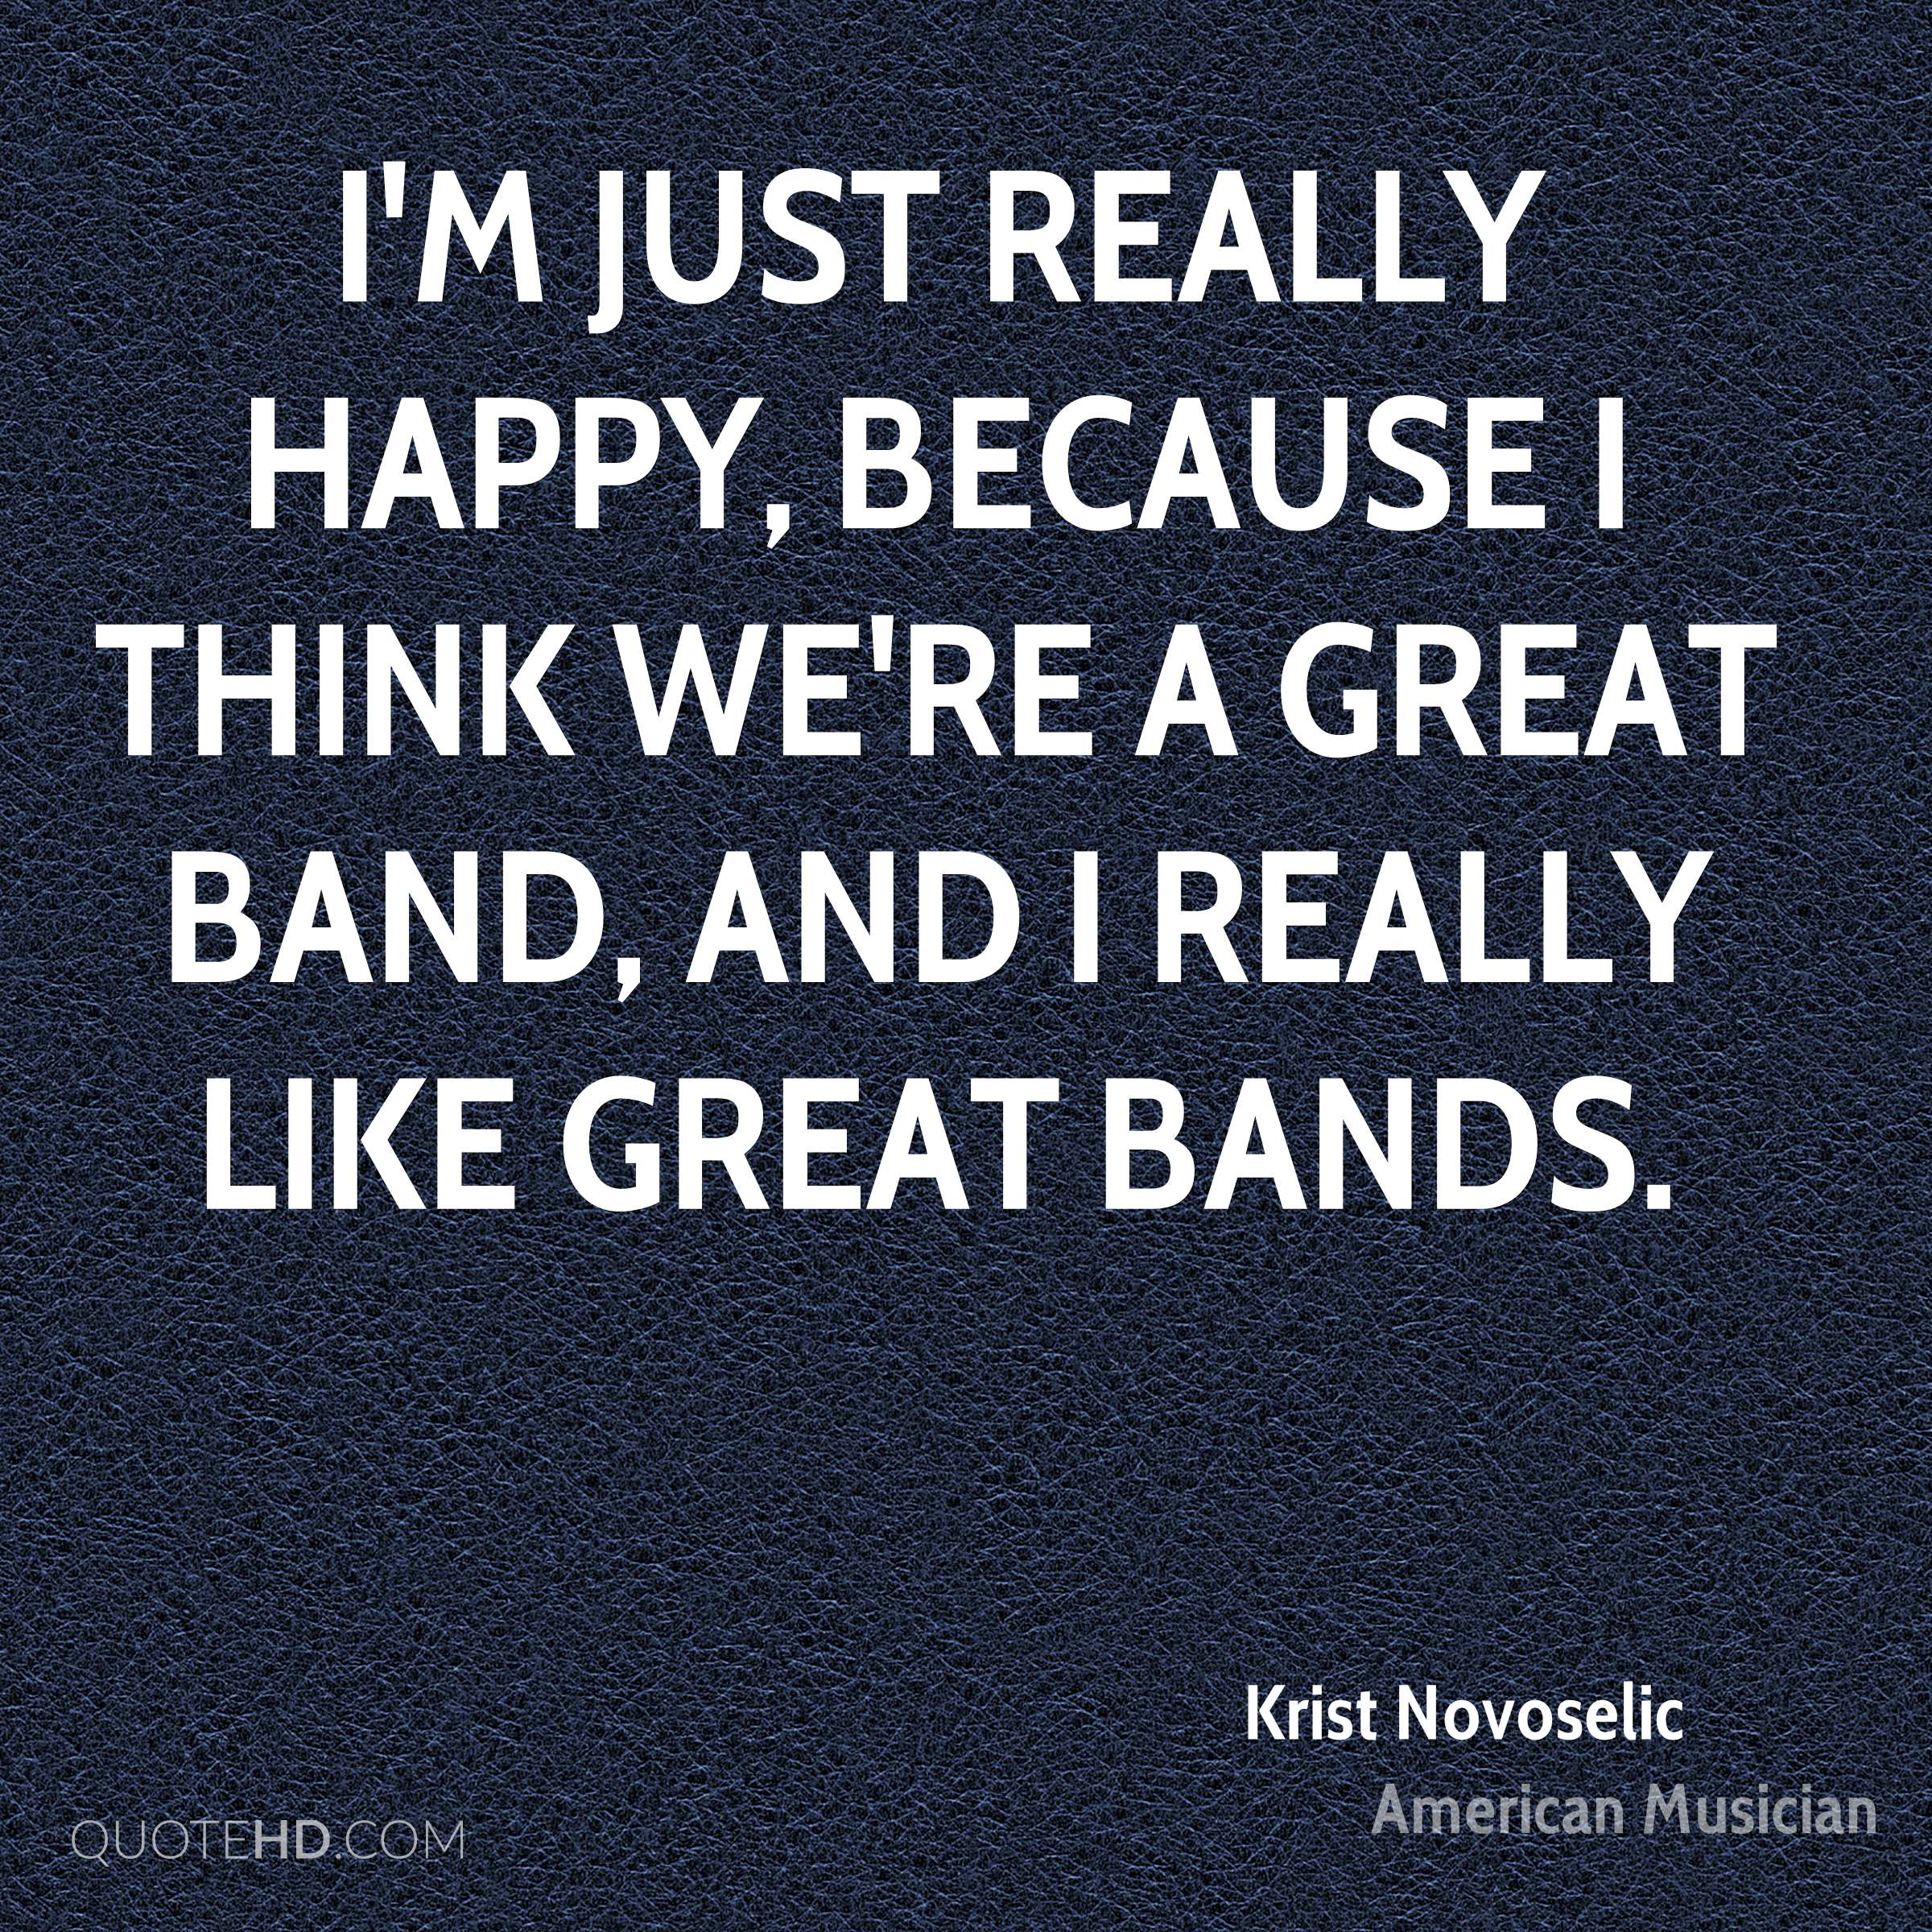 I'm just really happy, because I think we're a great band, and I really like great bands.